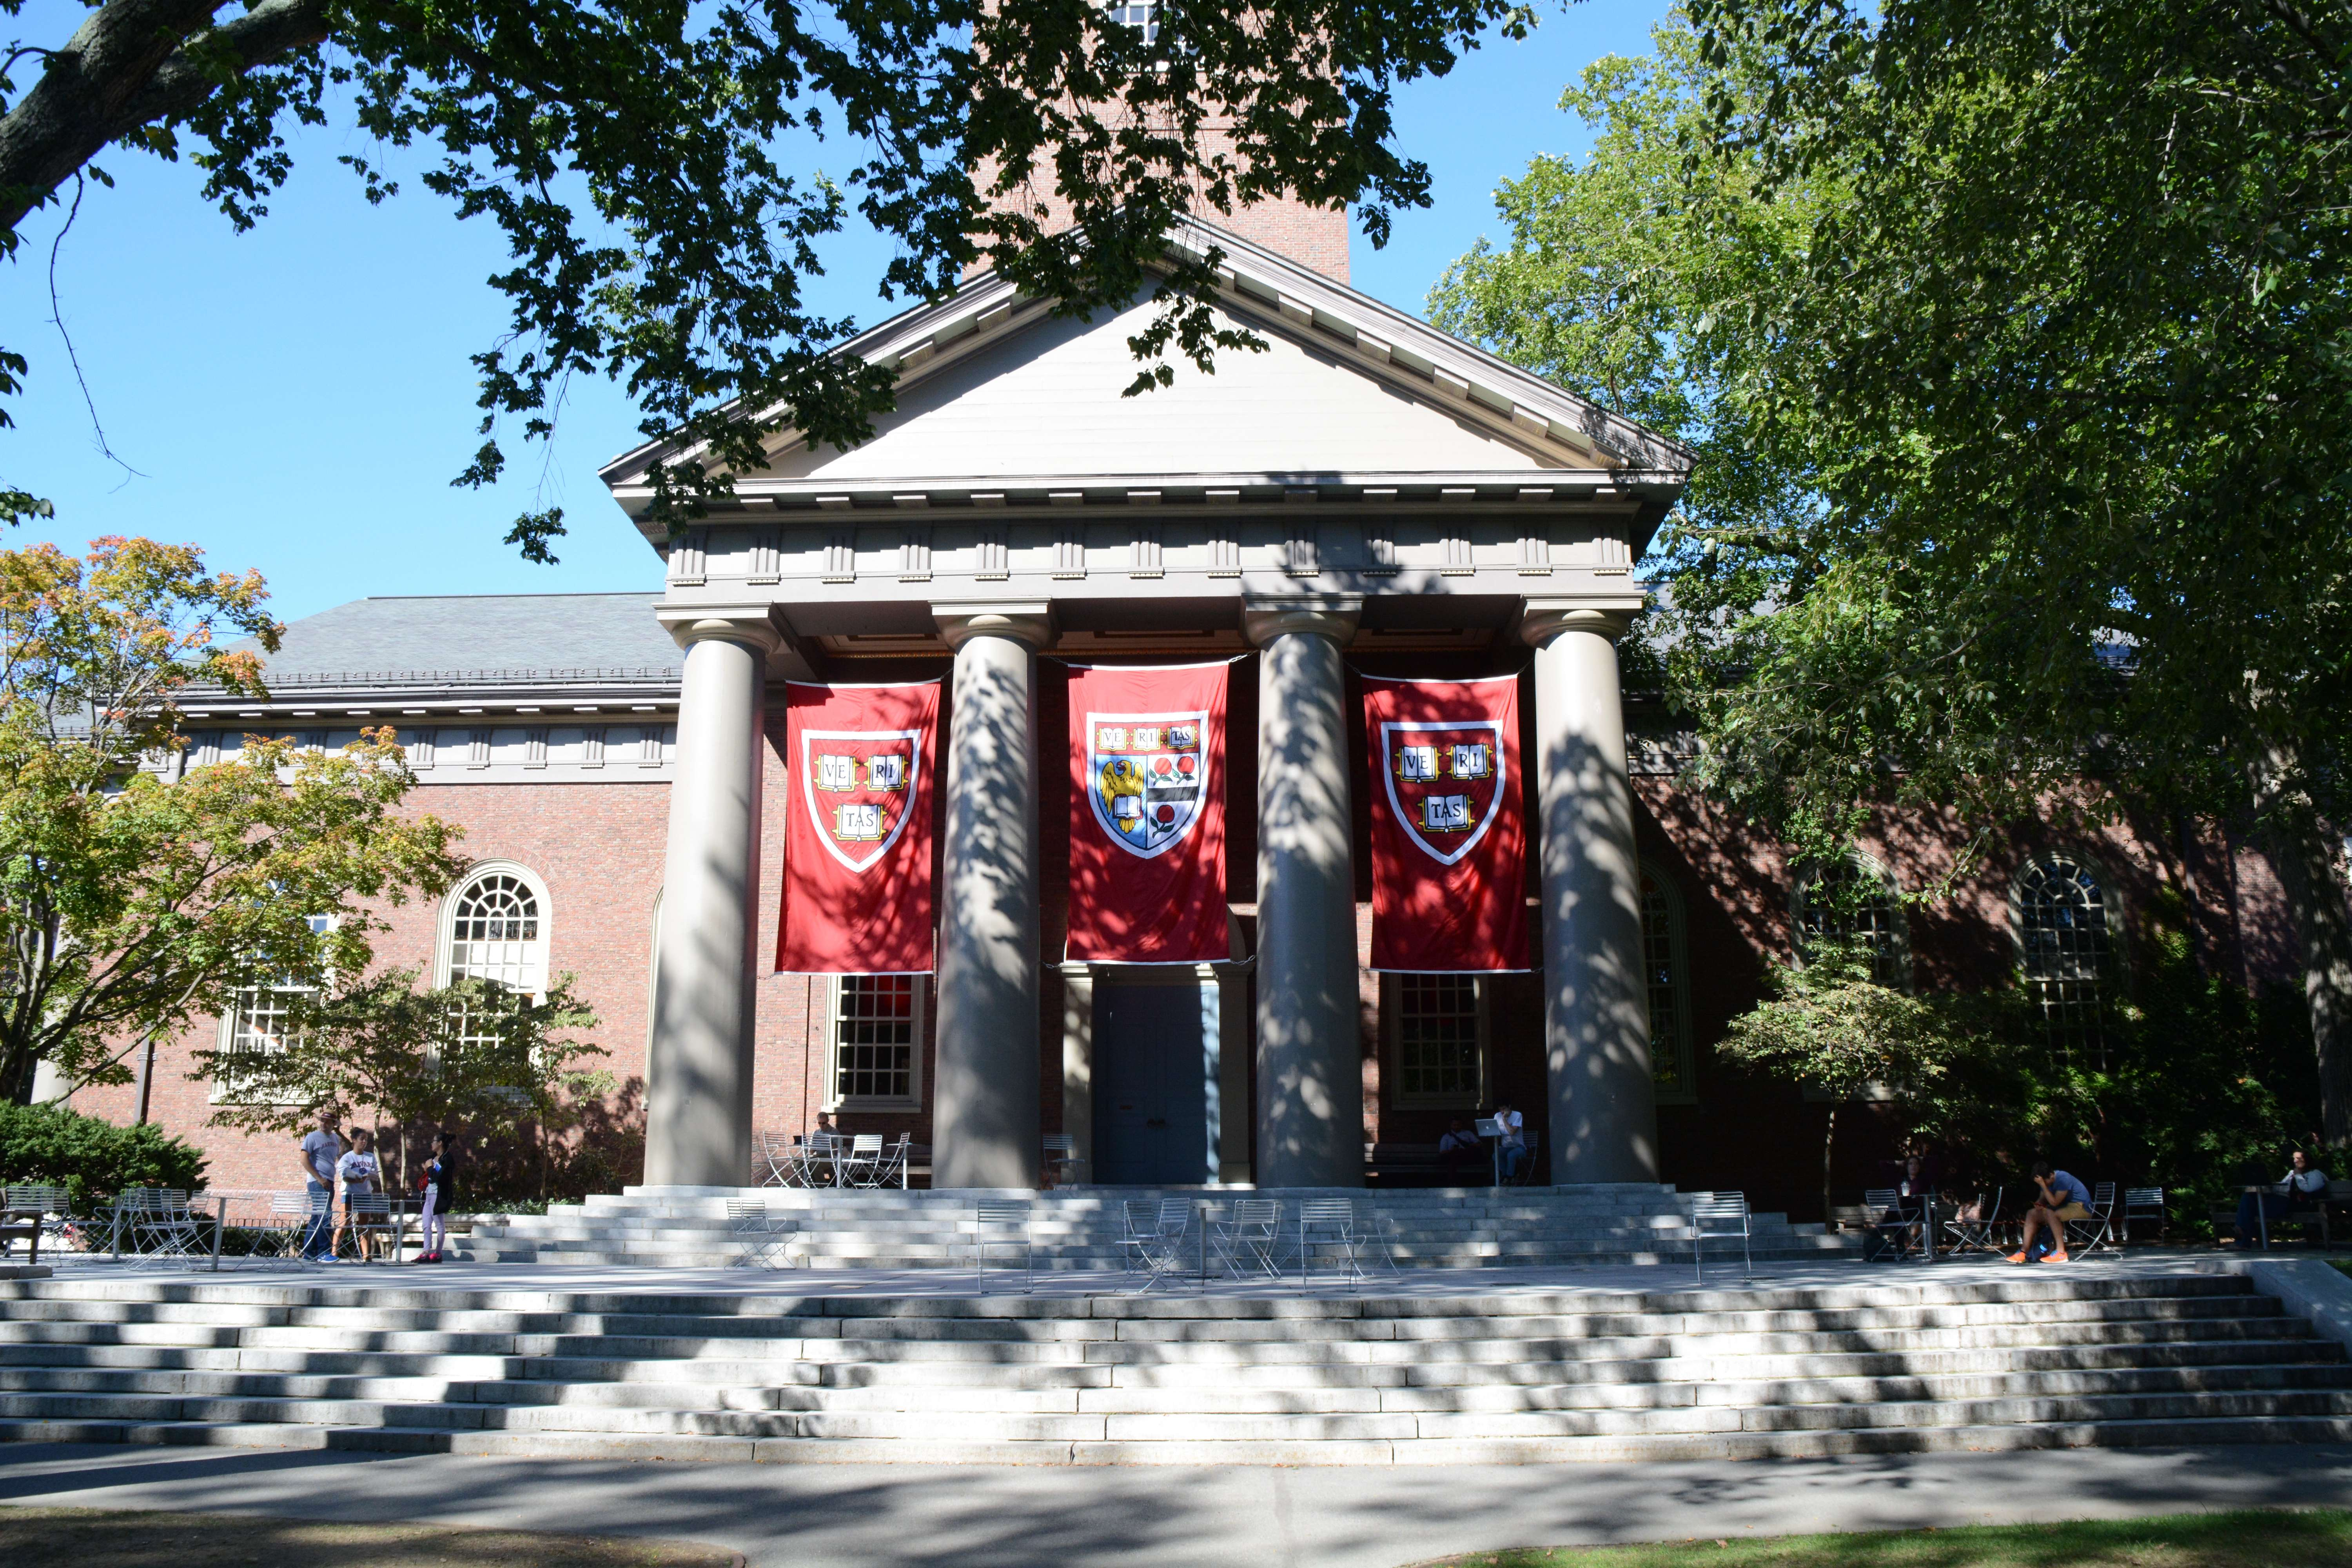 A building with harvard flags